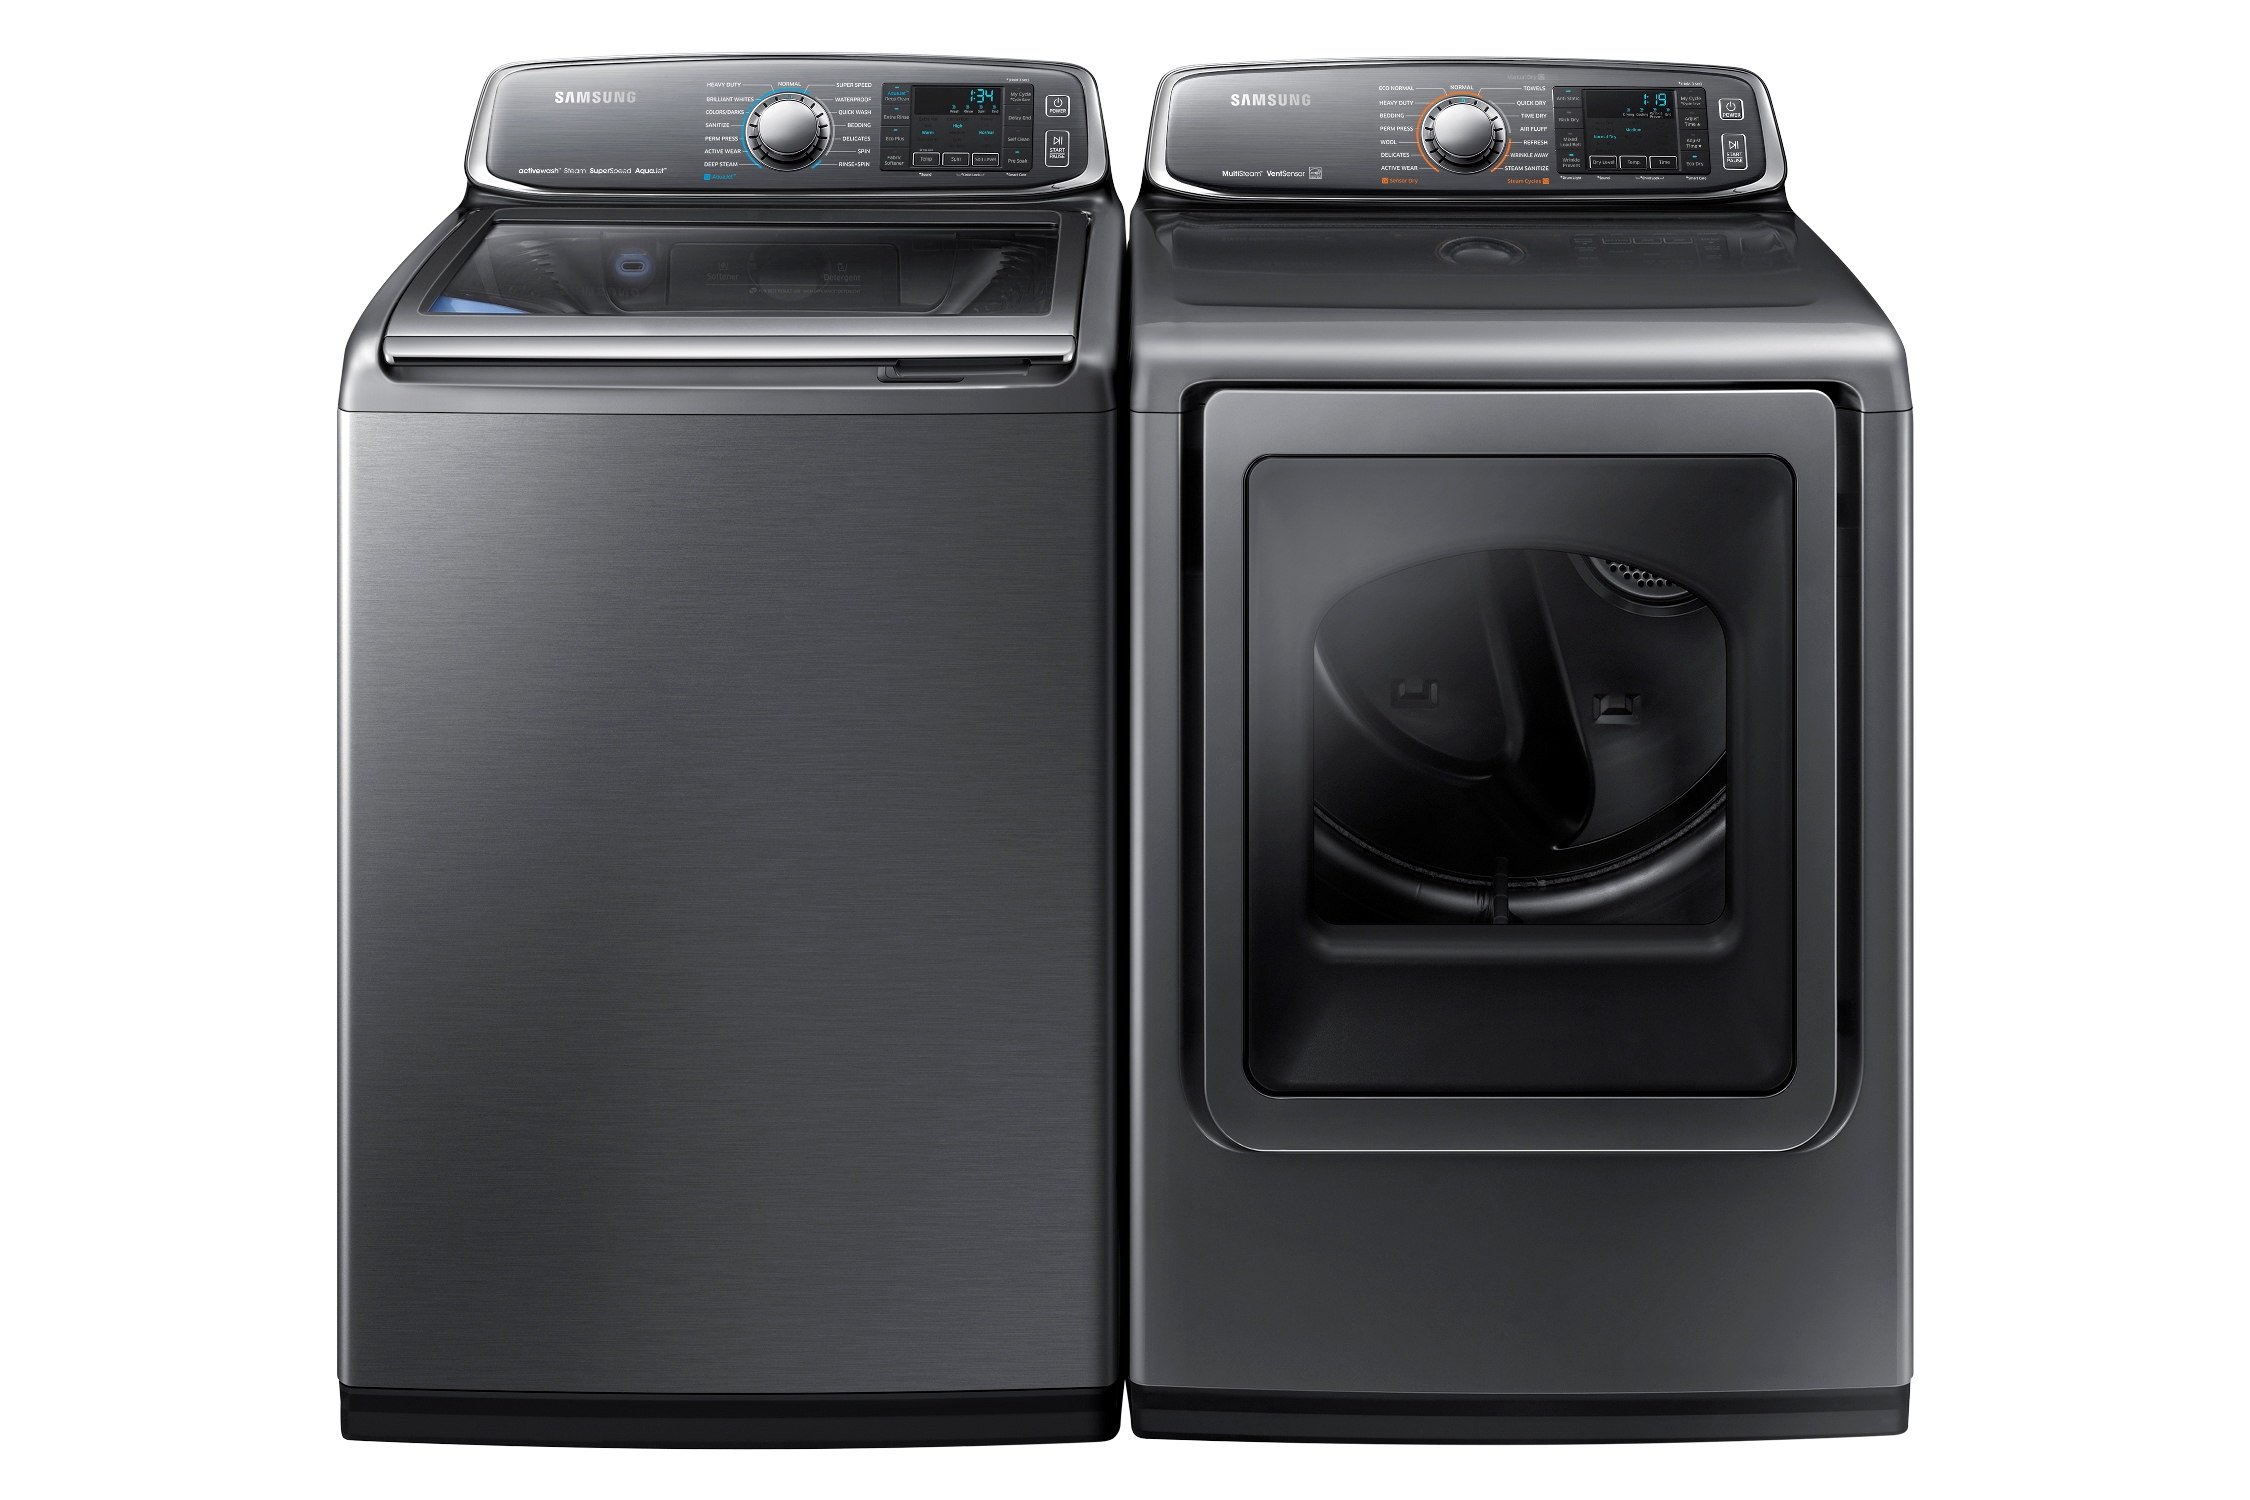 Samsung DV52J8700EP/A2 7.4 cu. ft. Large Capacity Electric Front Load Dryer Platinum